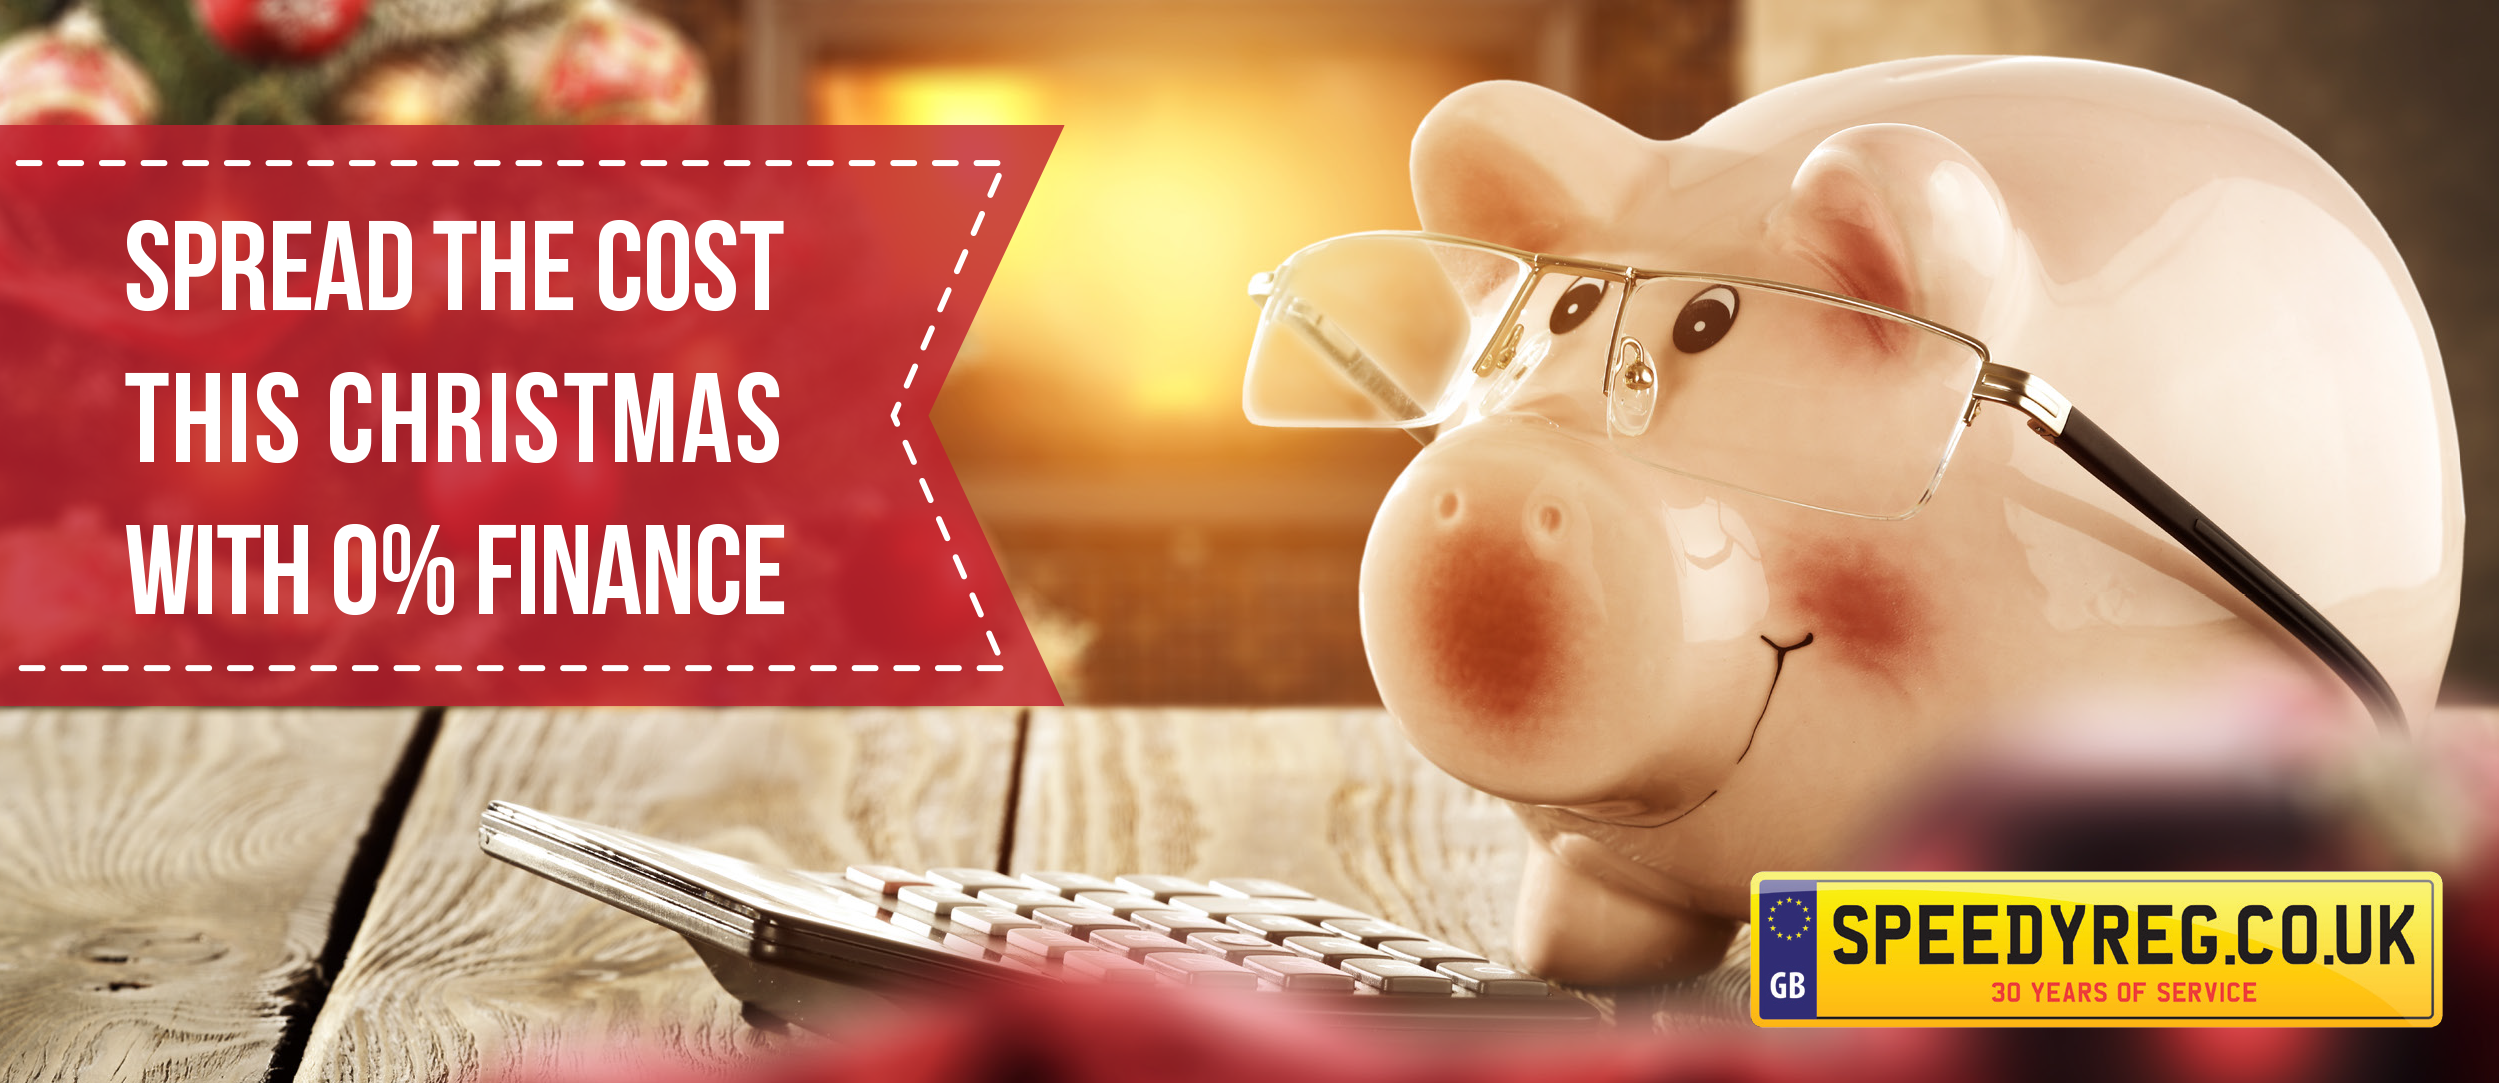 16-spread-the-cost-this-christmas-with-0-finance